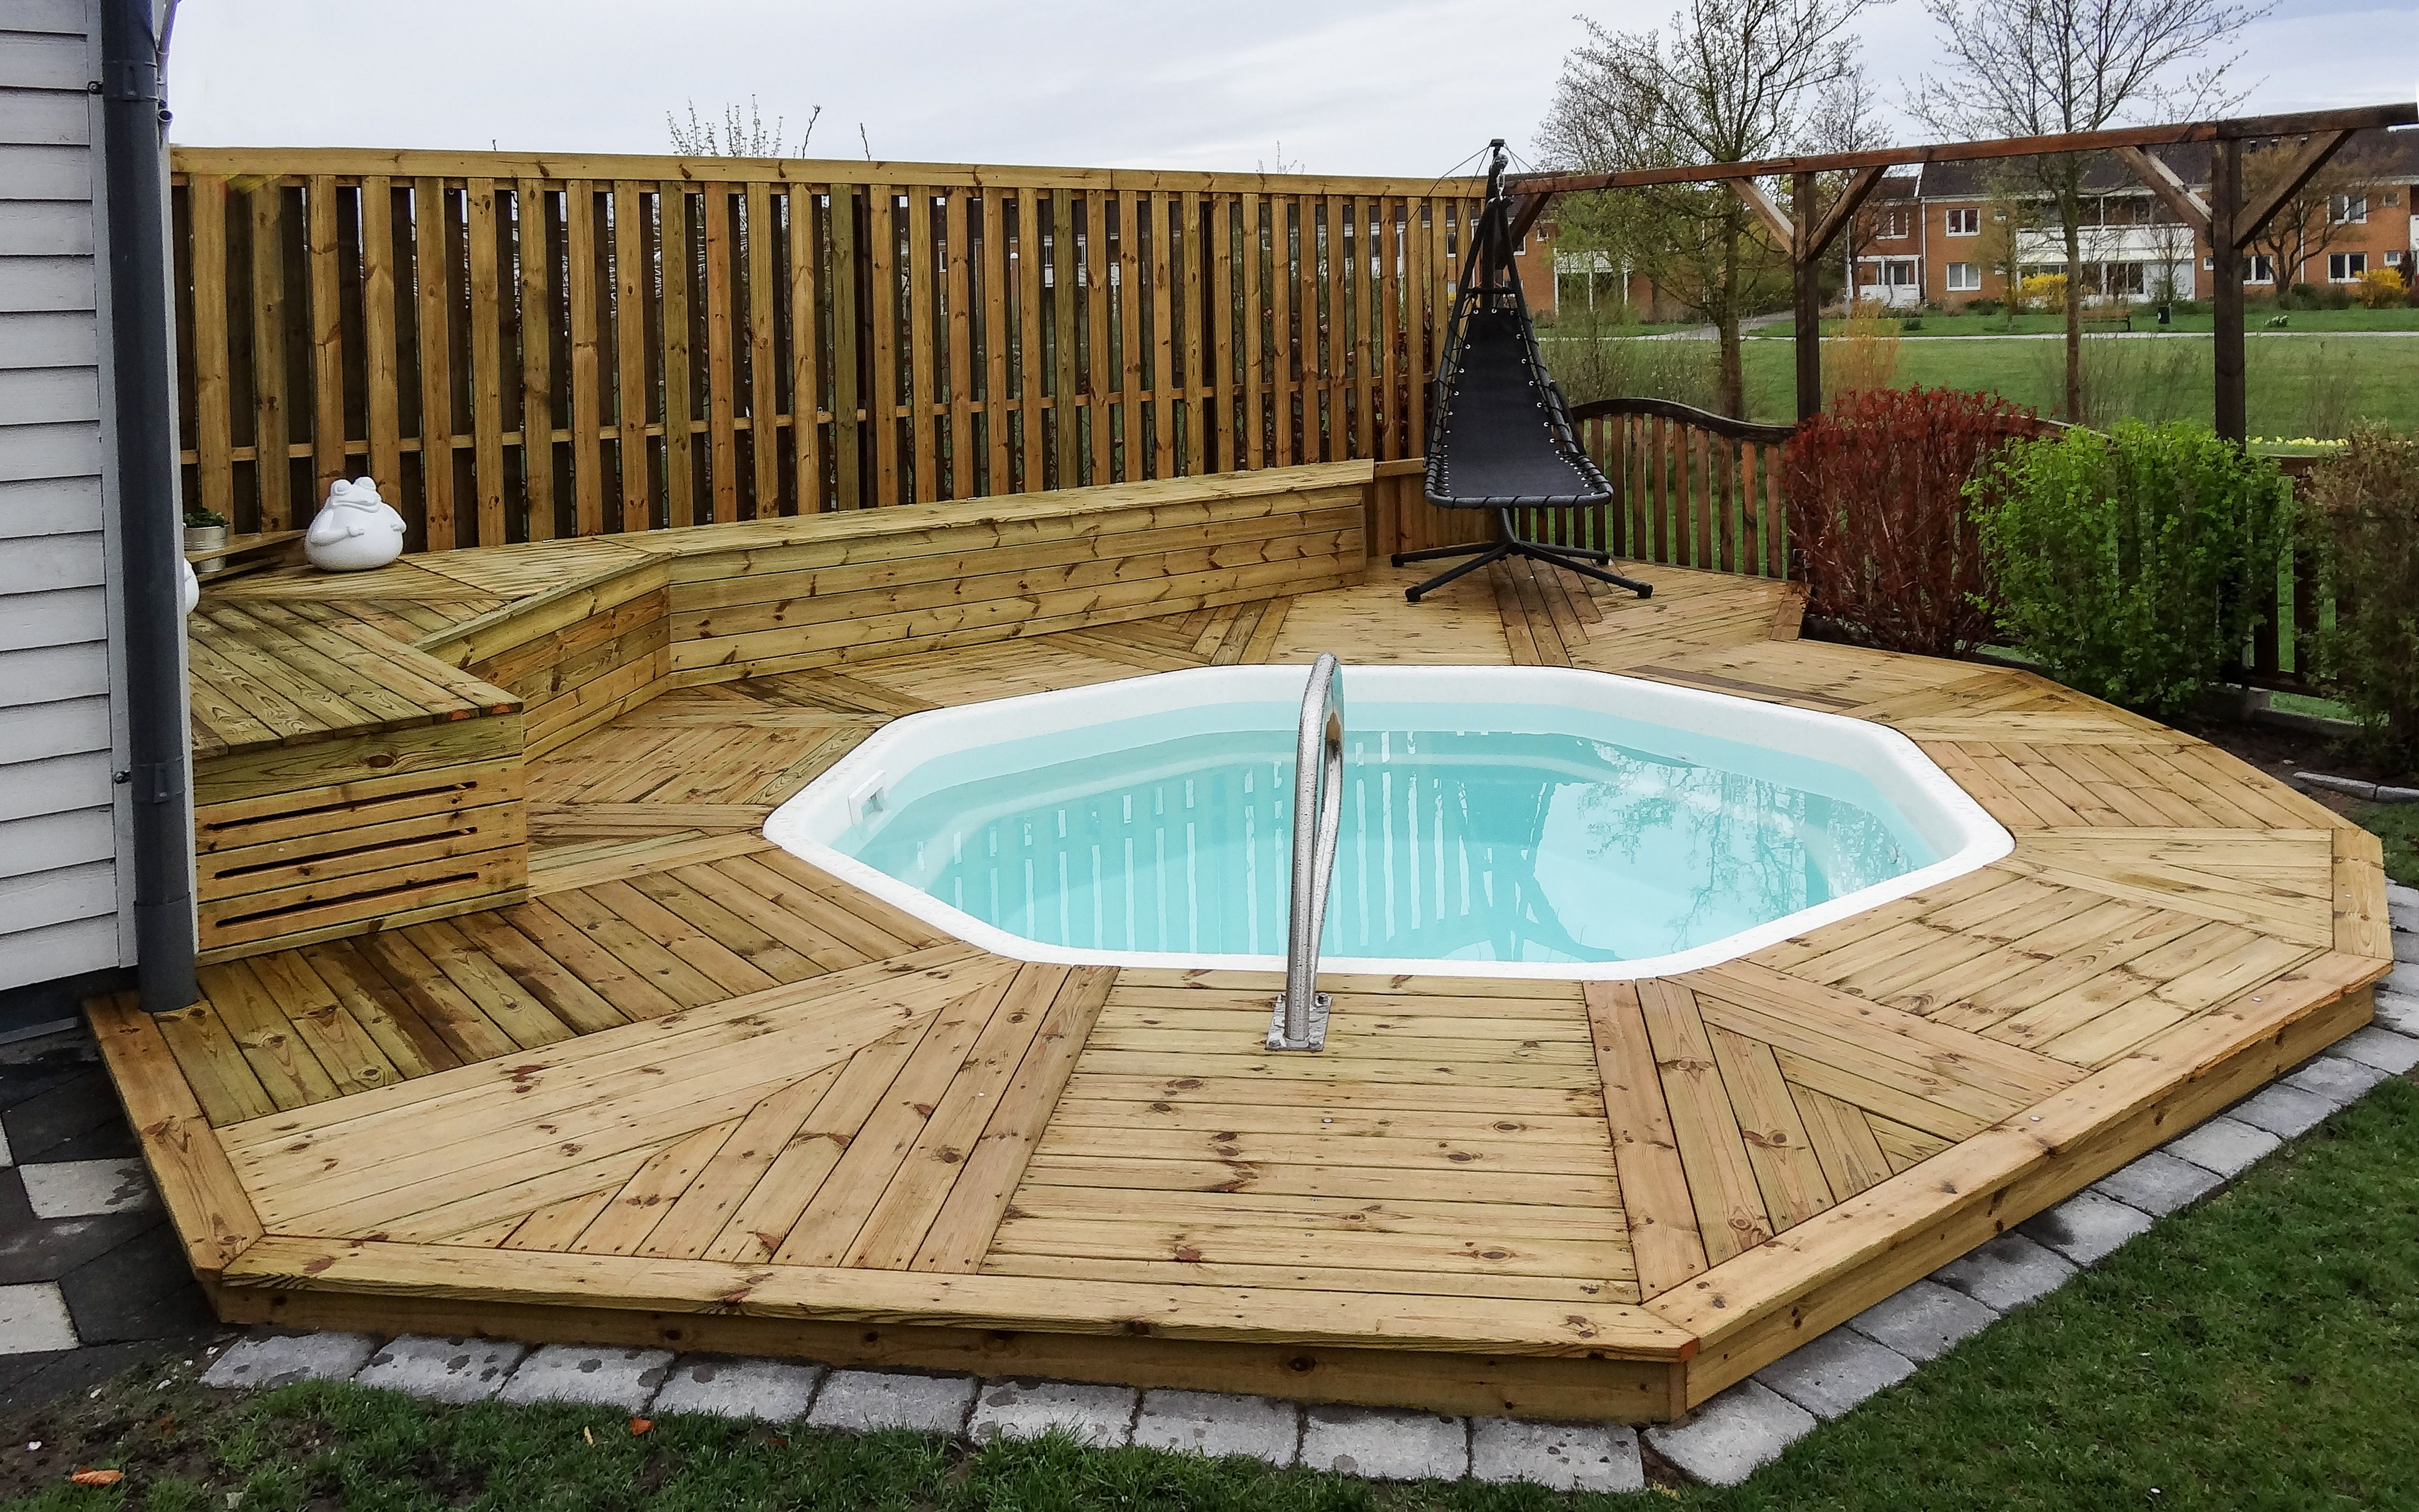 Unique Wood Decks for Above Ground Pools